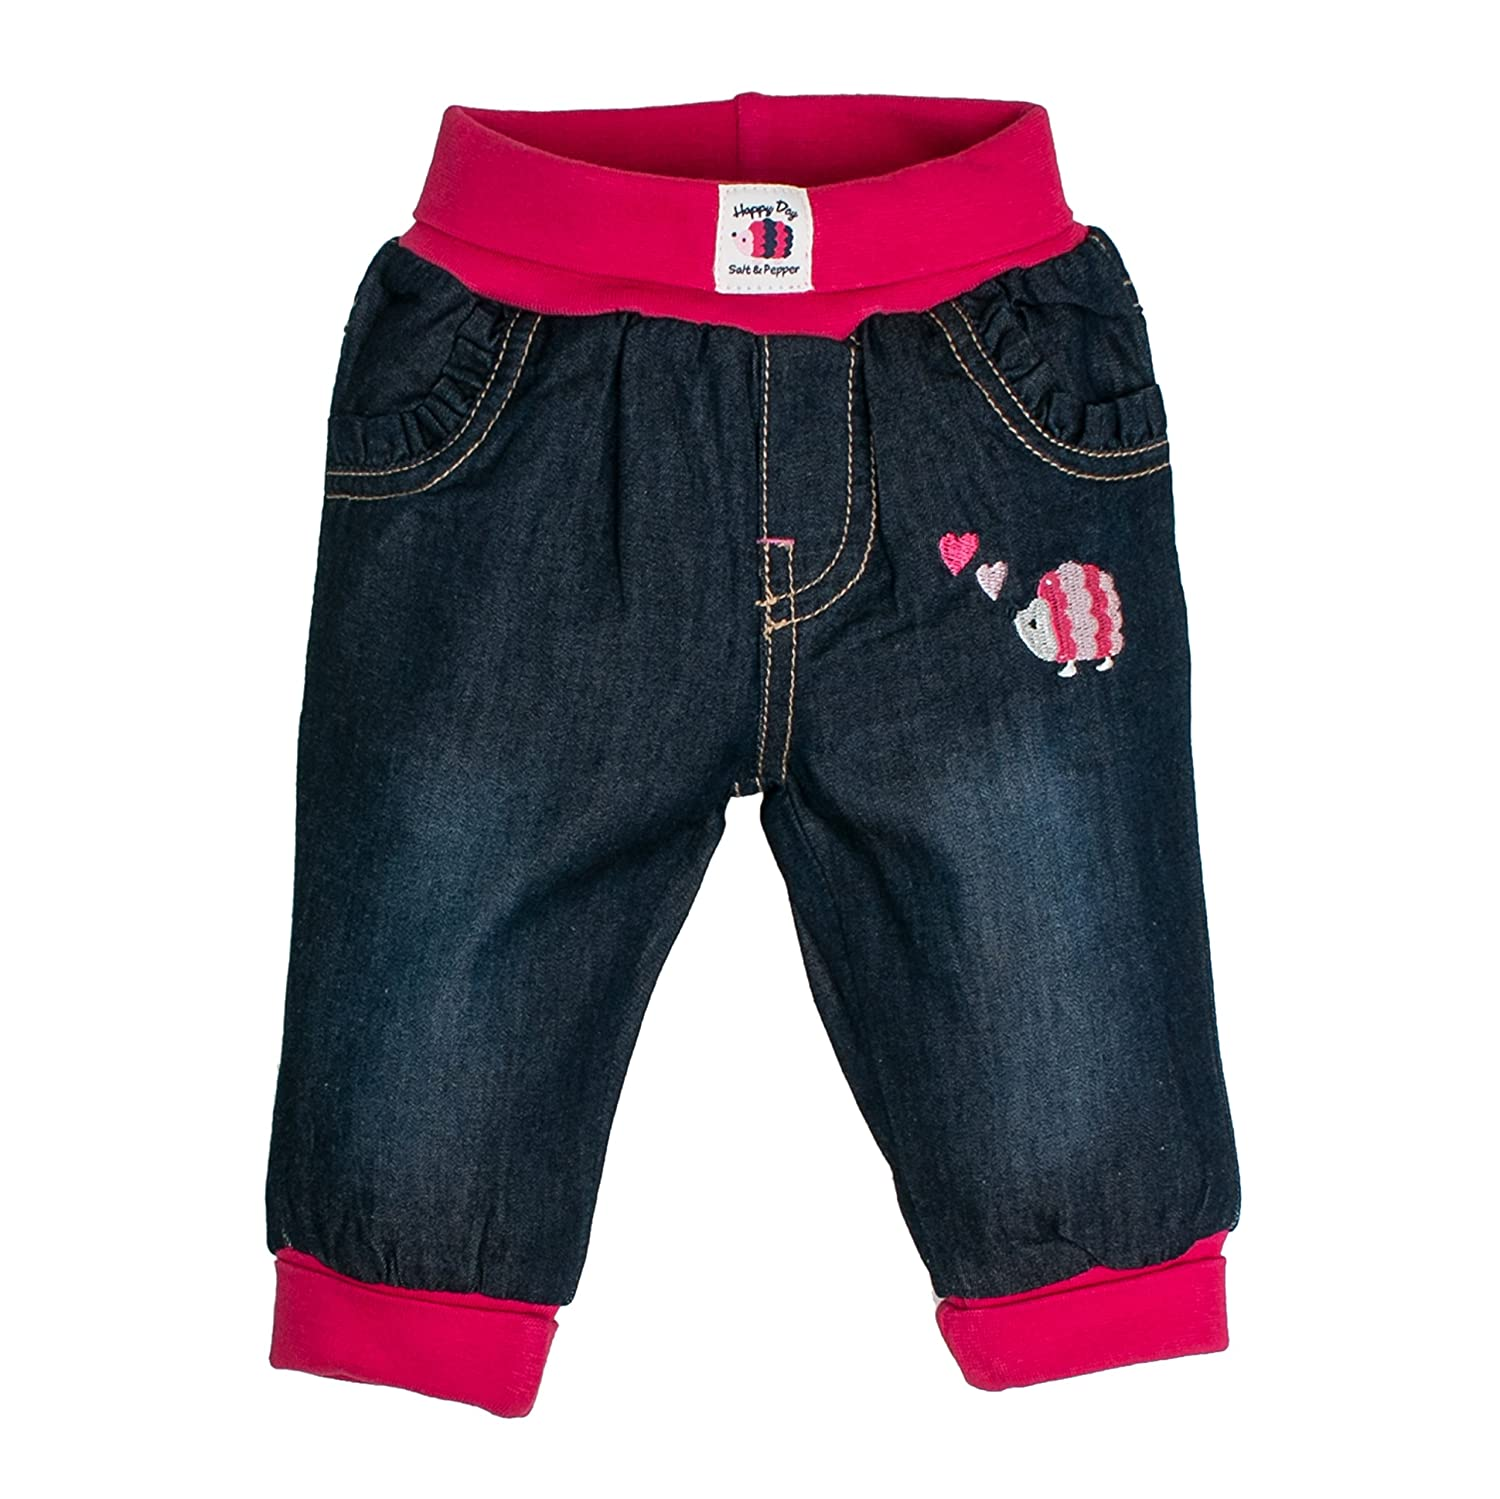 Salt & Pepper NB Jeans Happy, Bébé Fille SALT AND PEPPER 75220207